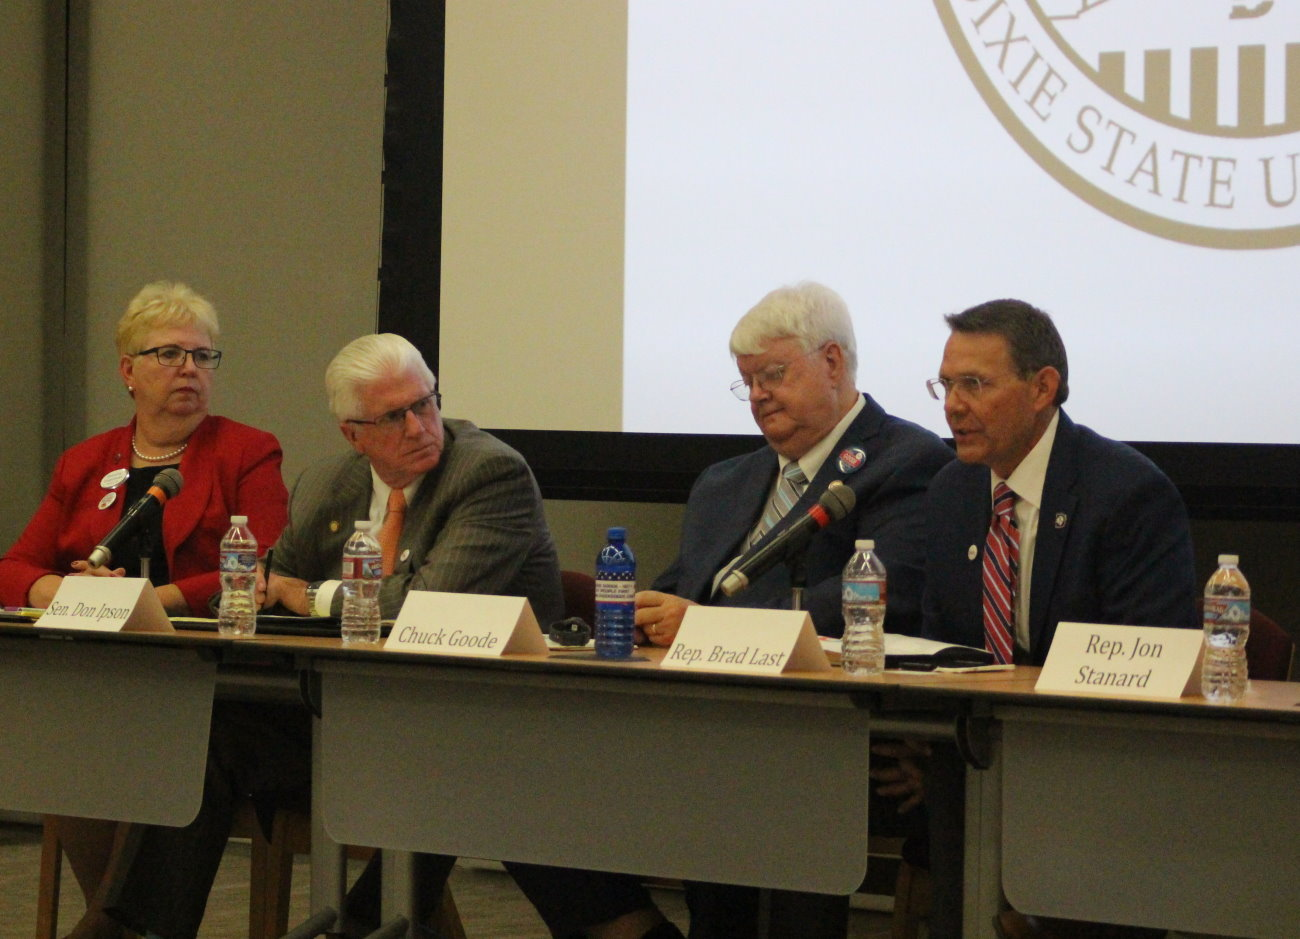 L-R: Legislative candidates Dorothy Engelman, Sen. Don Ipson, Chuck Goode and Rep. Brad Last, and southwest Utah legislative candidates discussed issues facing the state and Washington County at a forum hosted at Dixie State University, St. George, Utah, Oct. 5, 2016 | Photo by Mori Kessler, St. George News